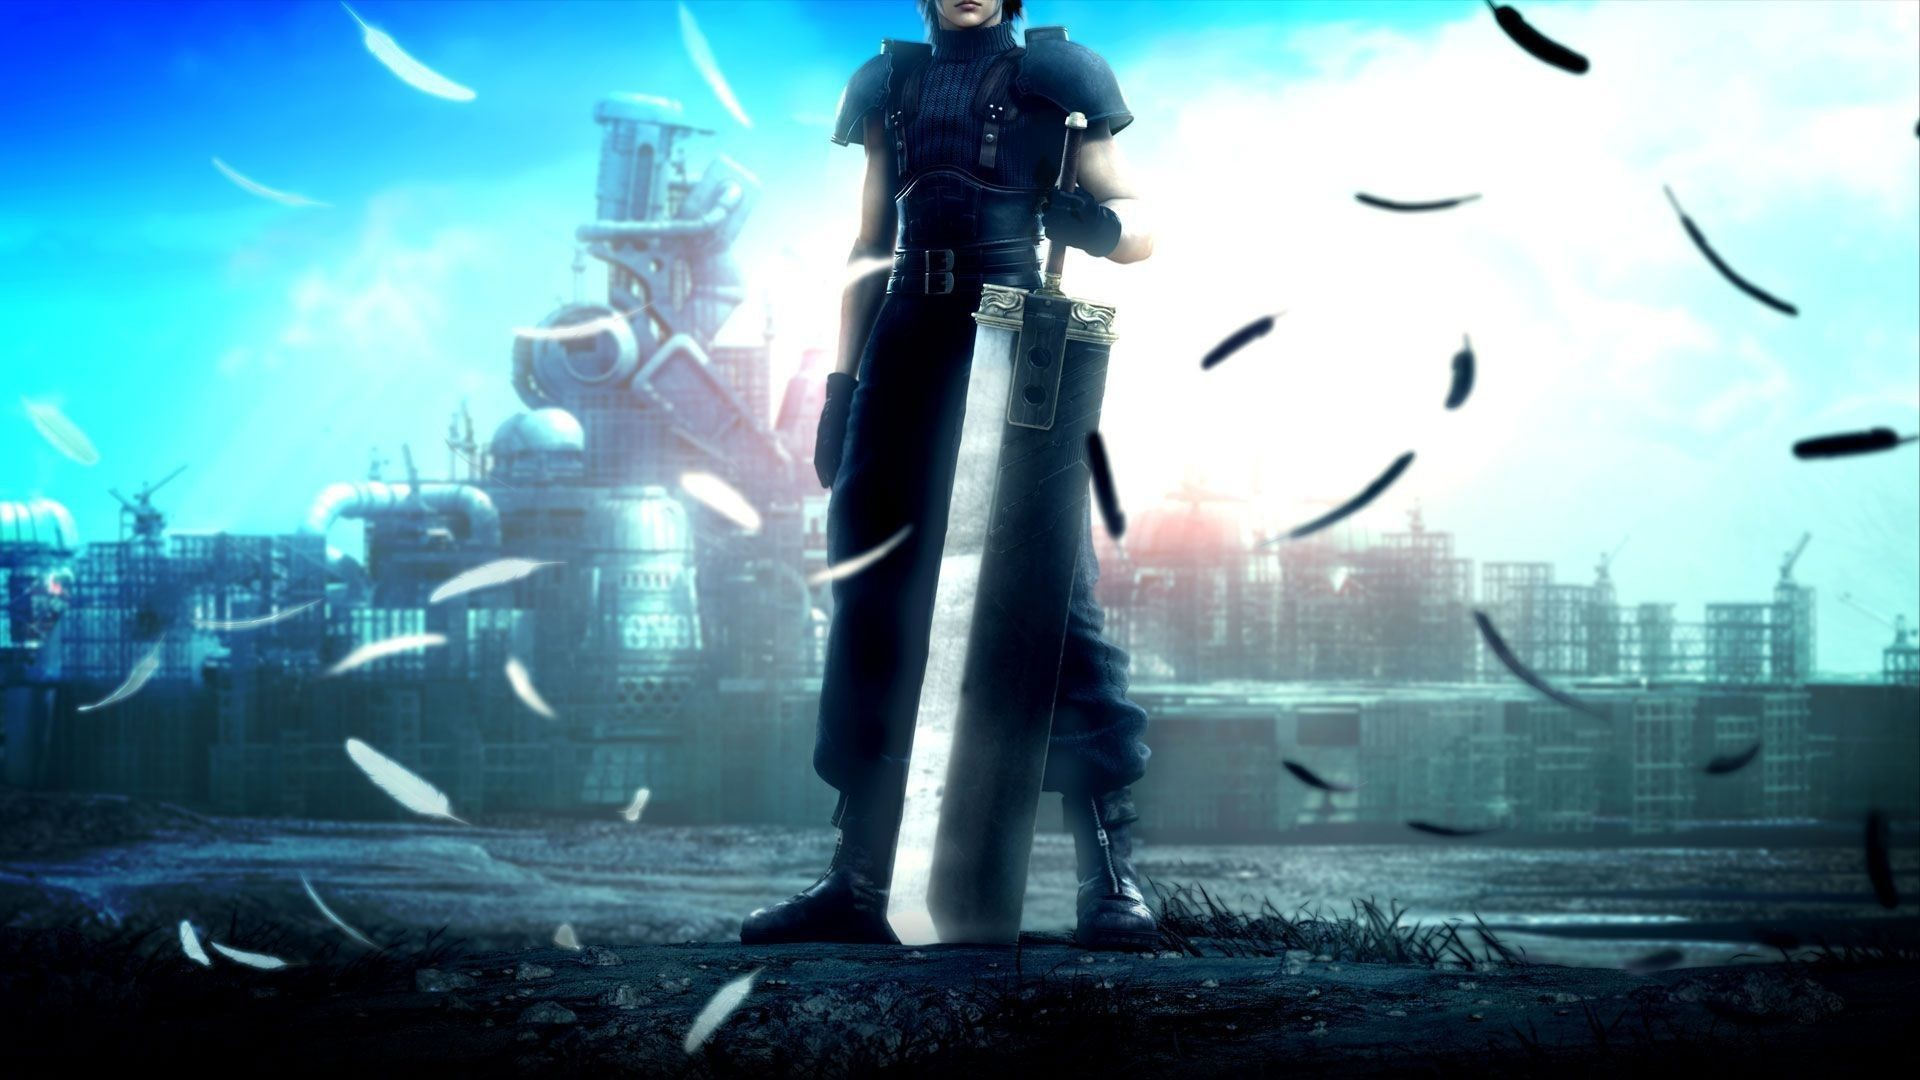 Cloud Strife Wallpaper Hd Posted By John Cunningham